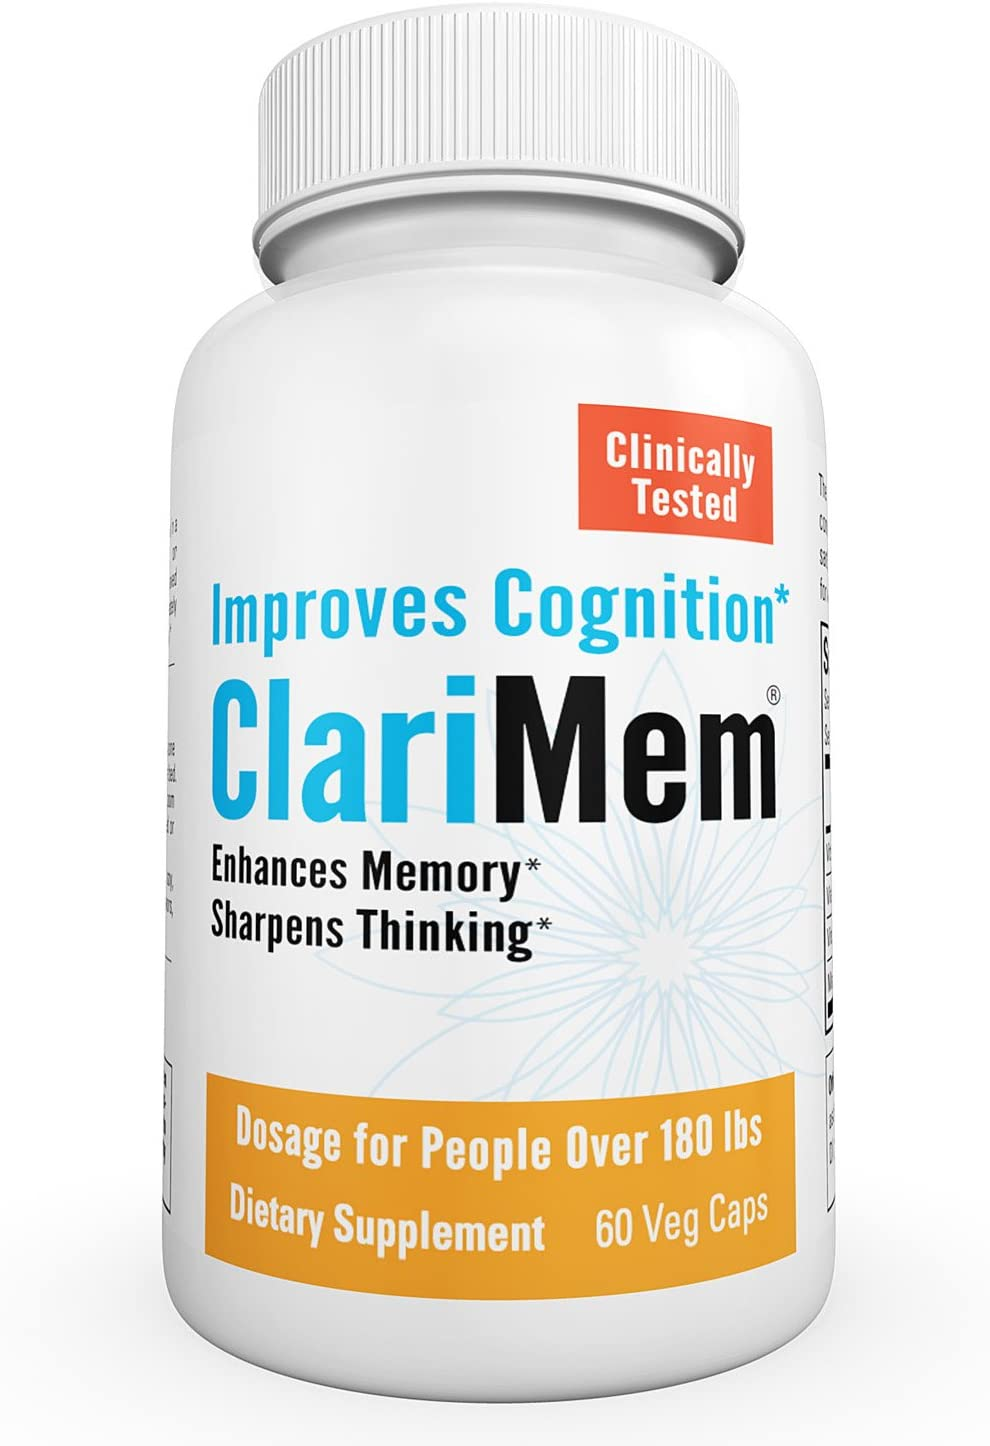 ClariMem-Clinically Tested Brain Supplement Nootropic- for Overall Memory, Focus, Clarity & Cognitive Support-1 Month Supply- ClariMem-(Over 180 lbs)